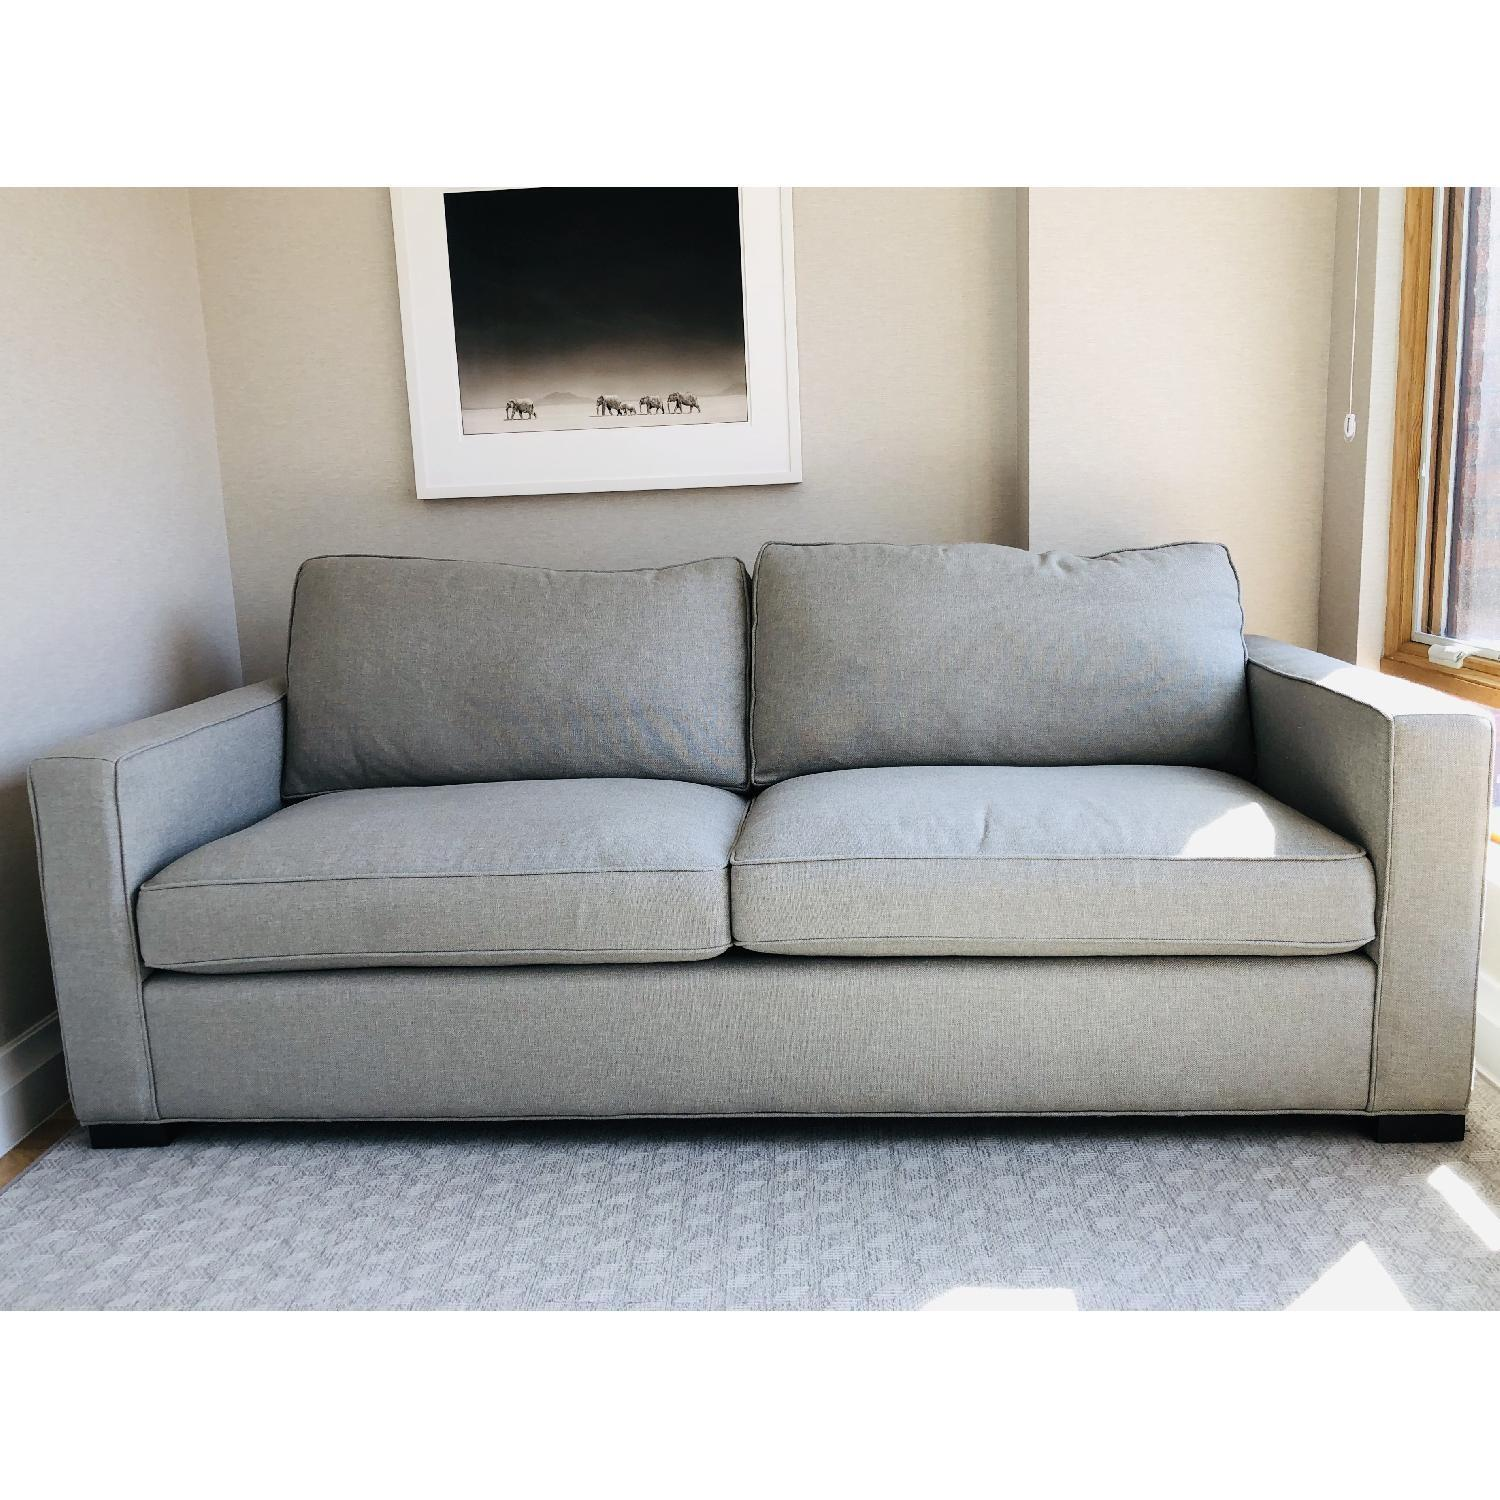 Room & Board Morrison Custom Sofa - image-1